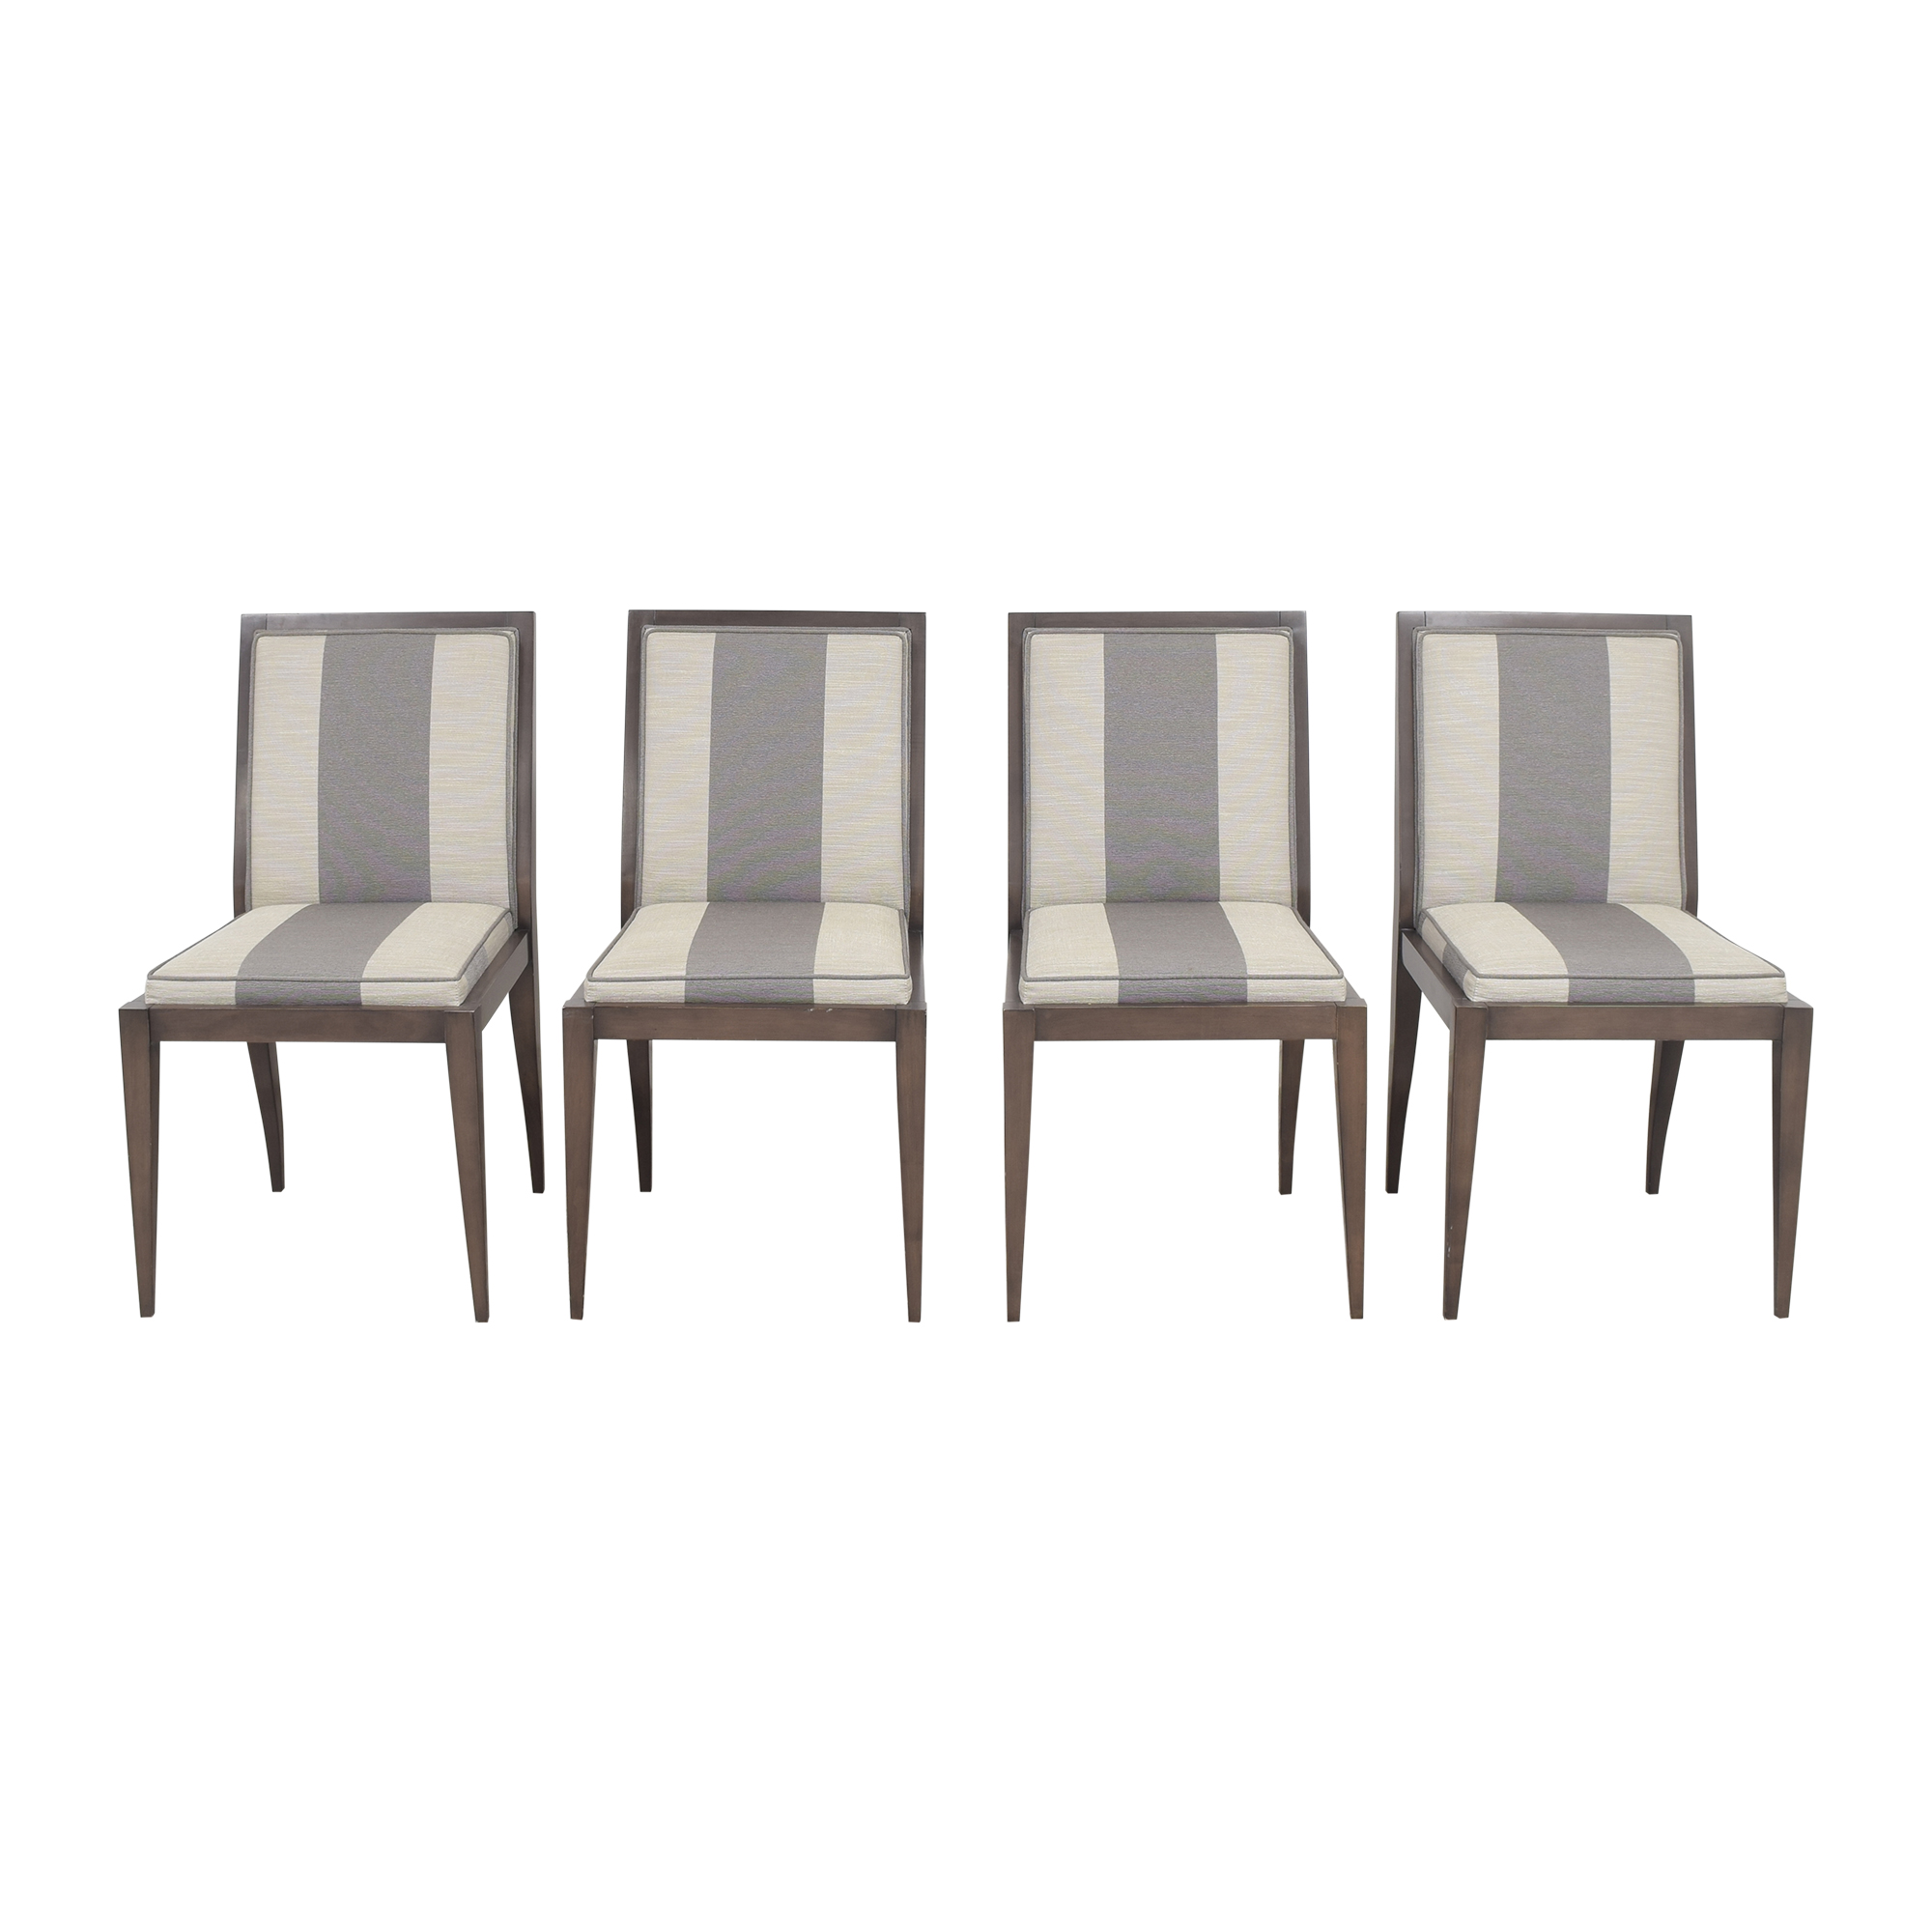 buy Swaim Swaim Salem Dining Chairs online